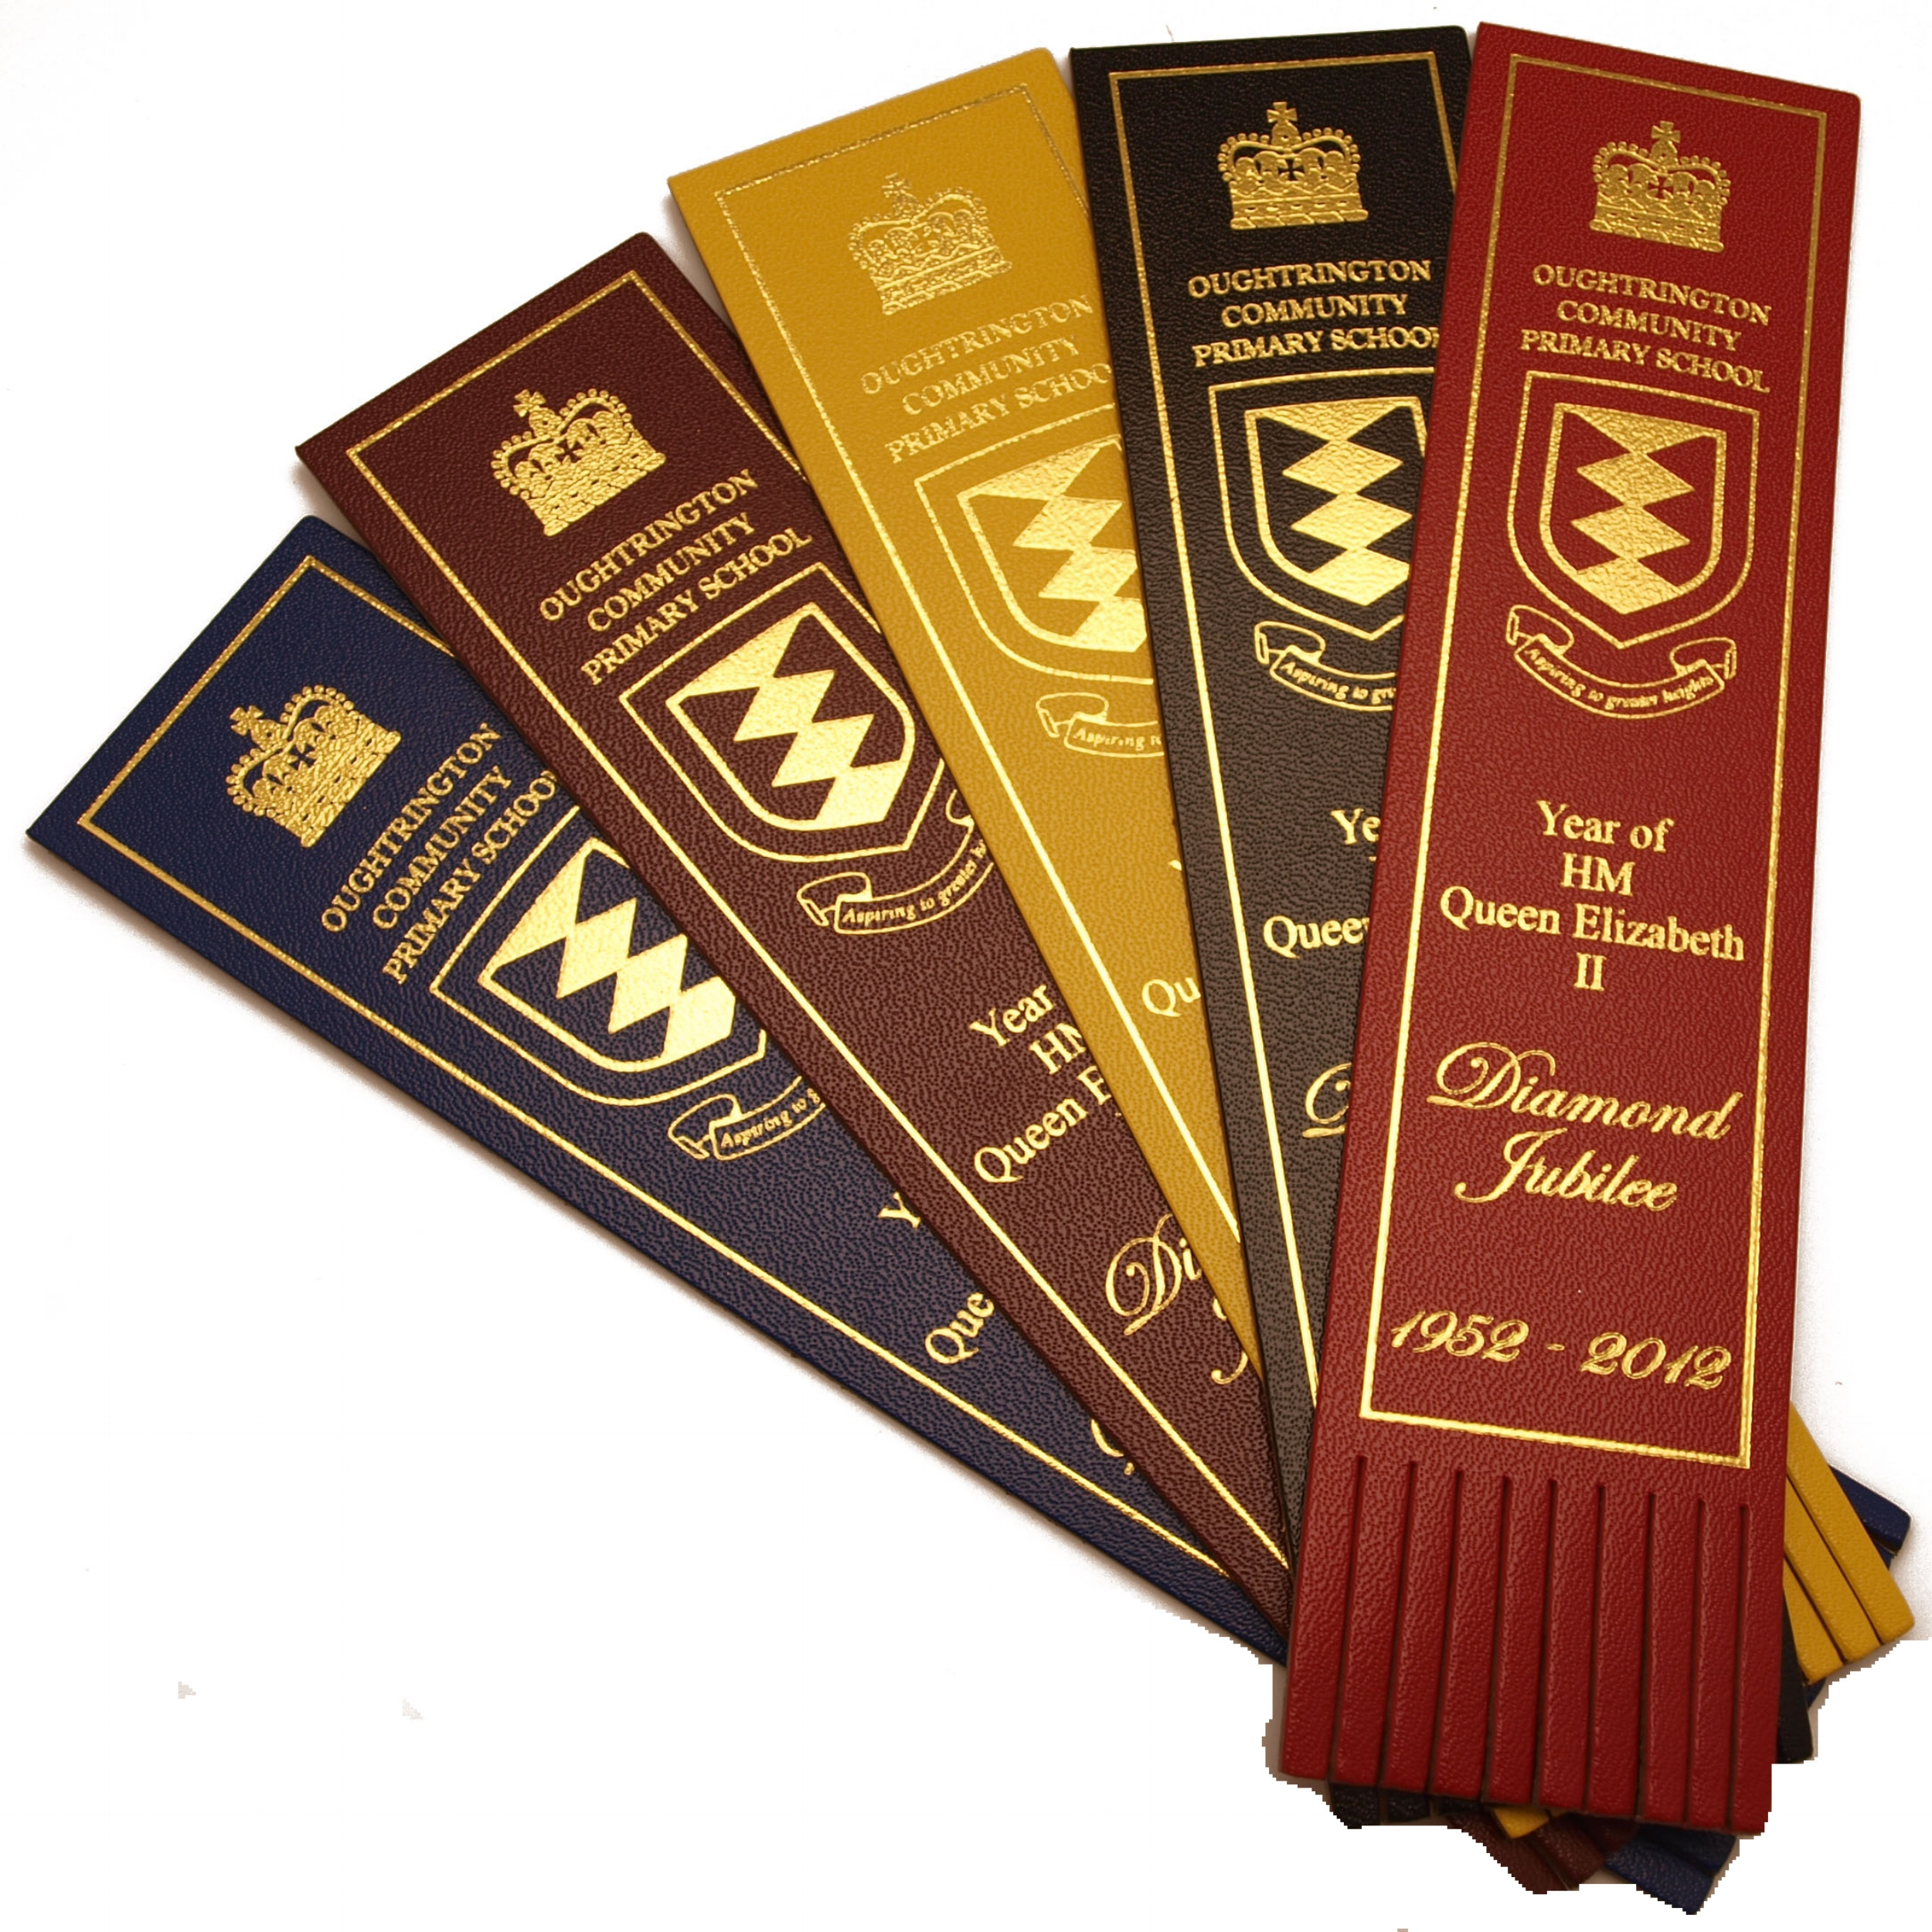 Attractive tasseled bookmarks to celebrate the Diamond Jubilee